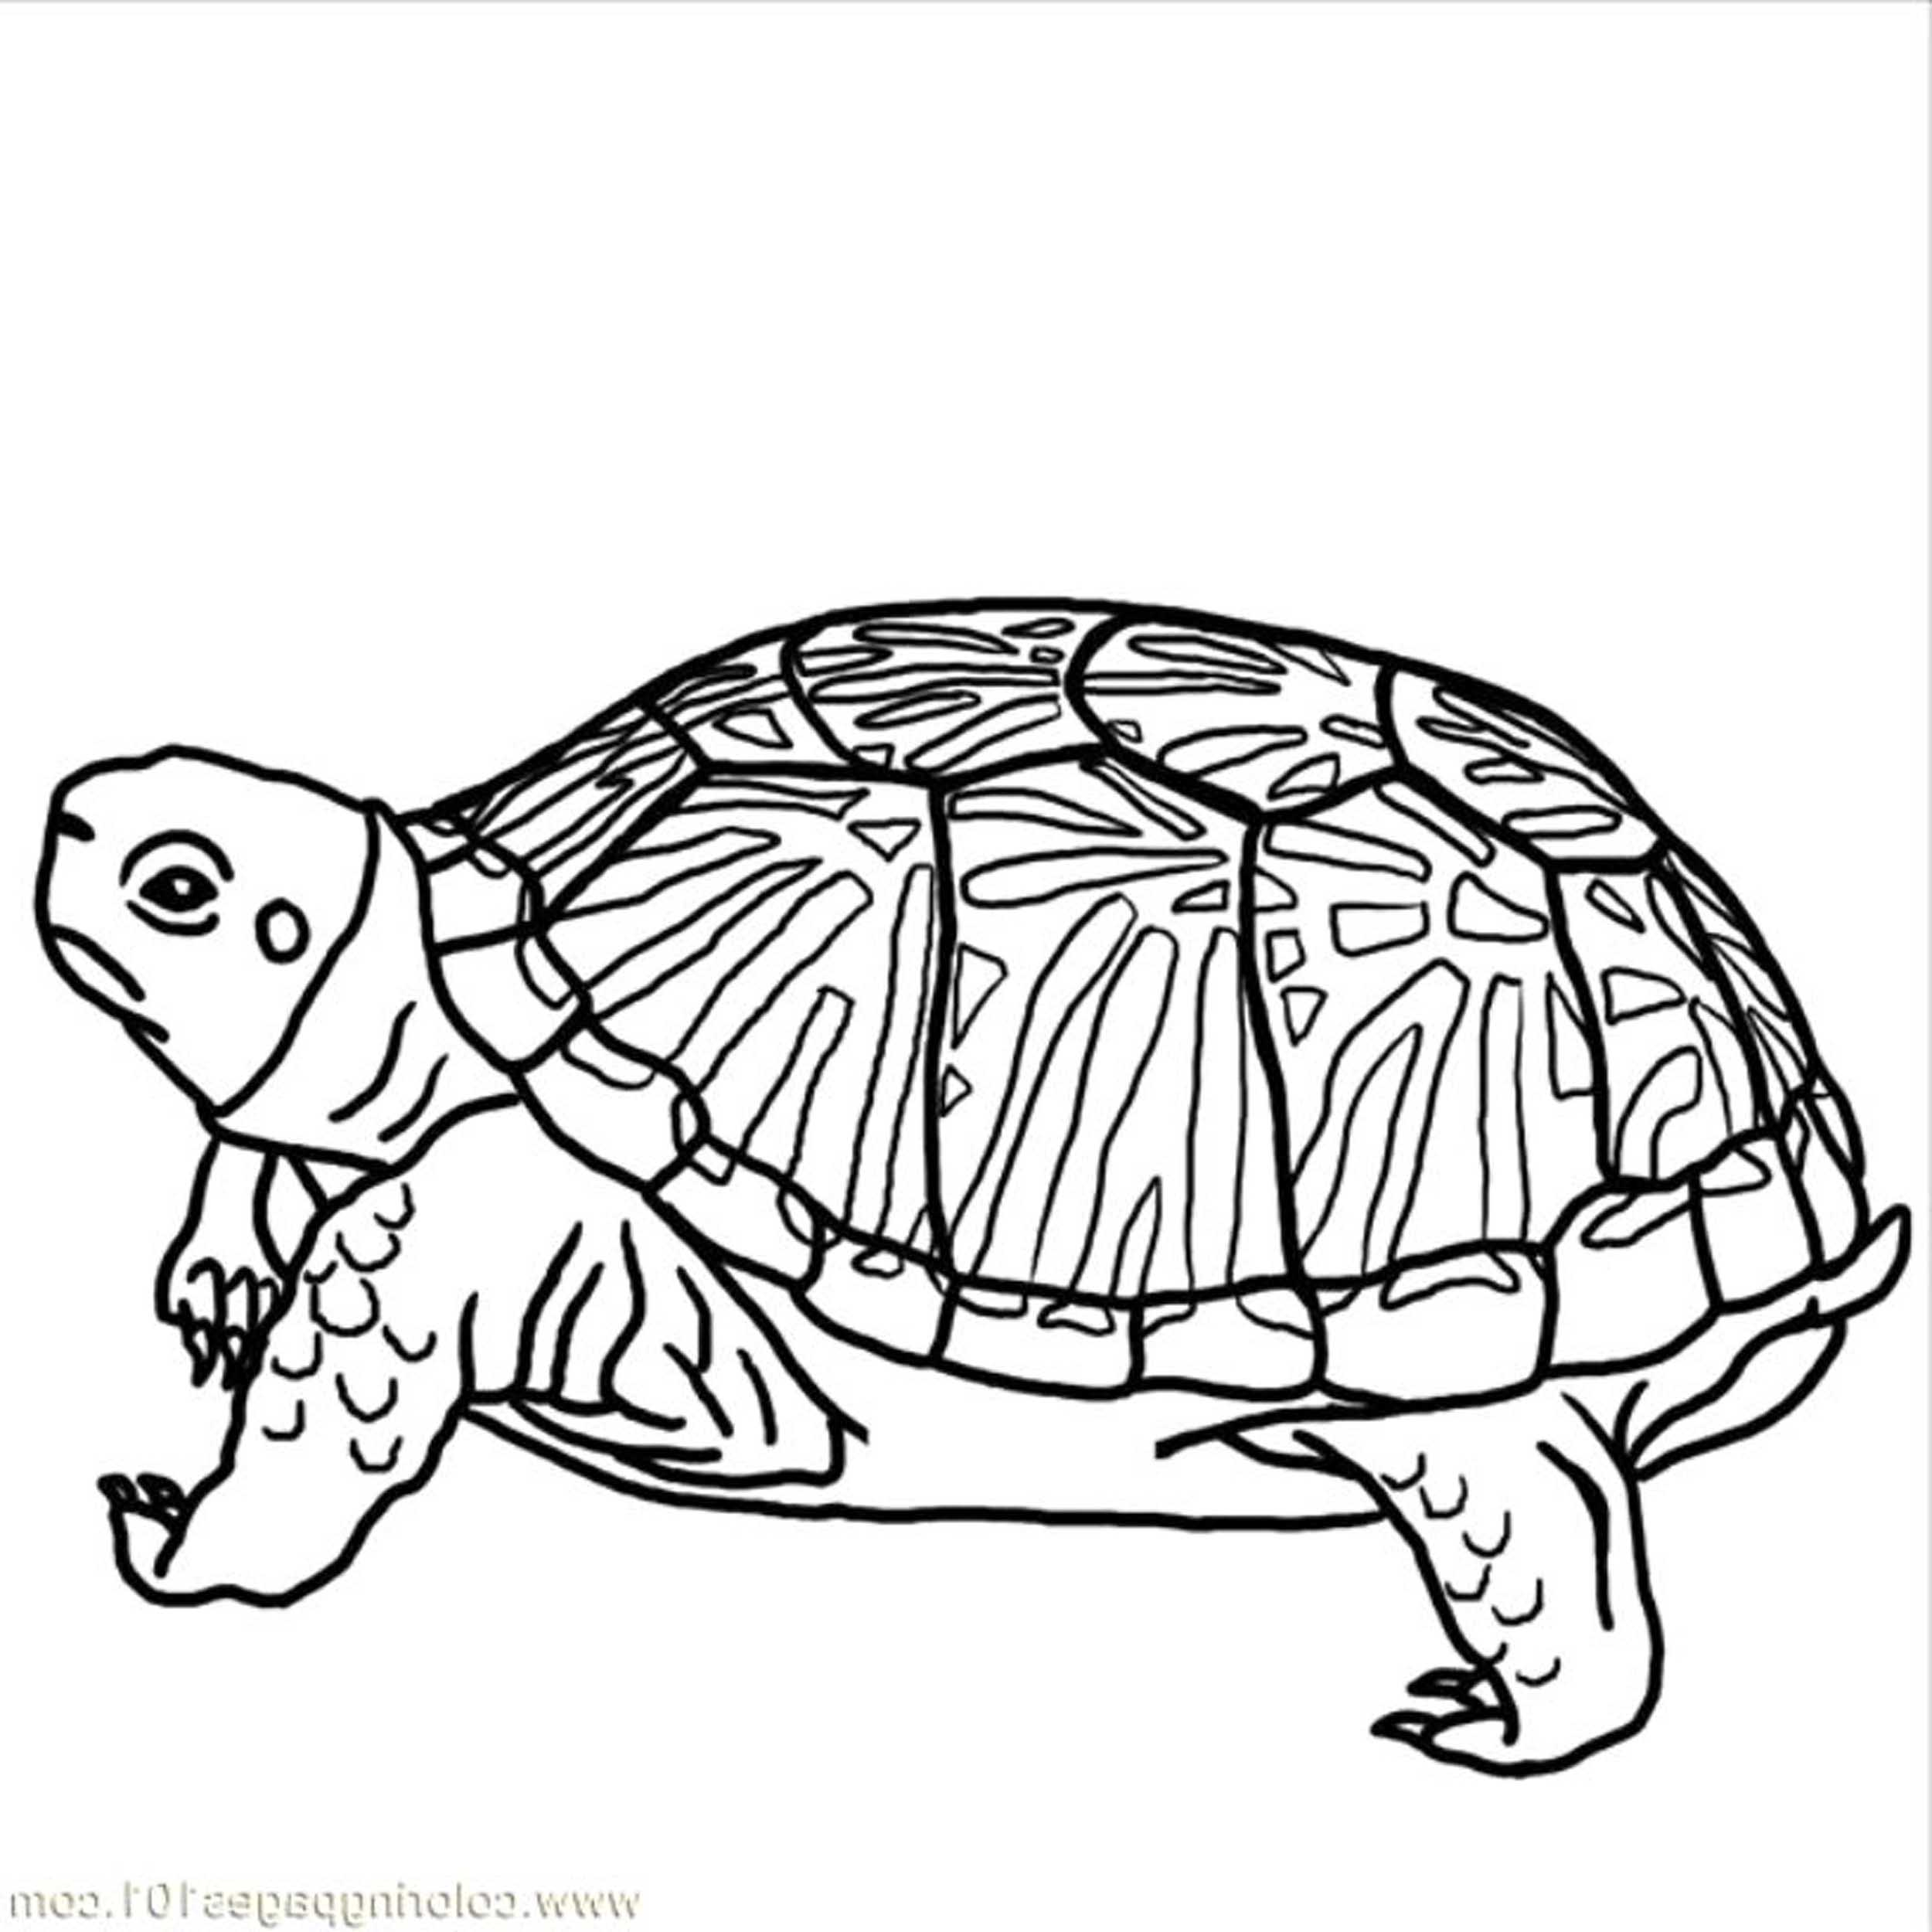 Turtles coloring page coloring home for Coloring page of a turtle